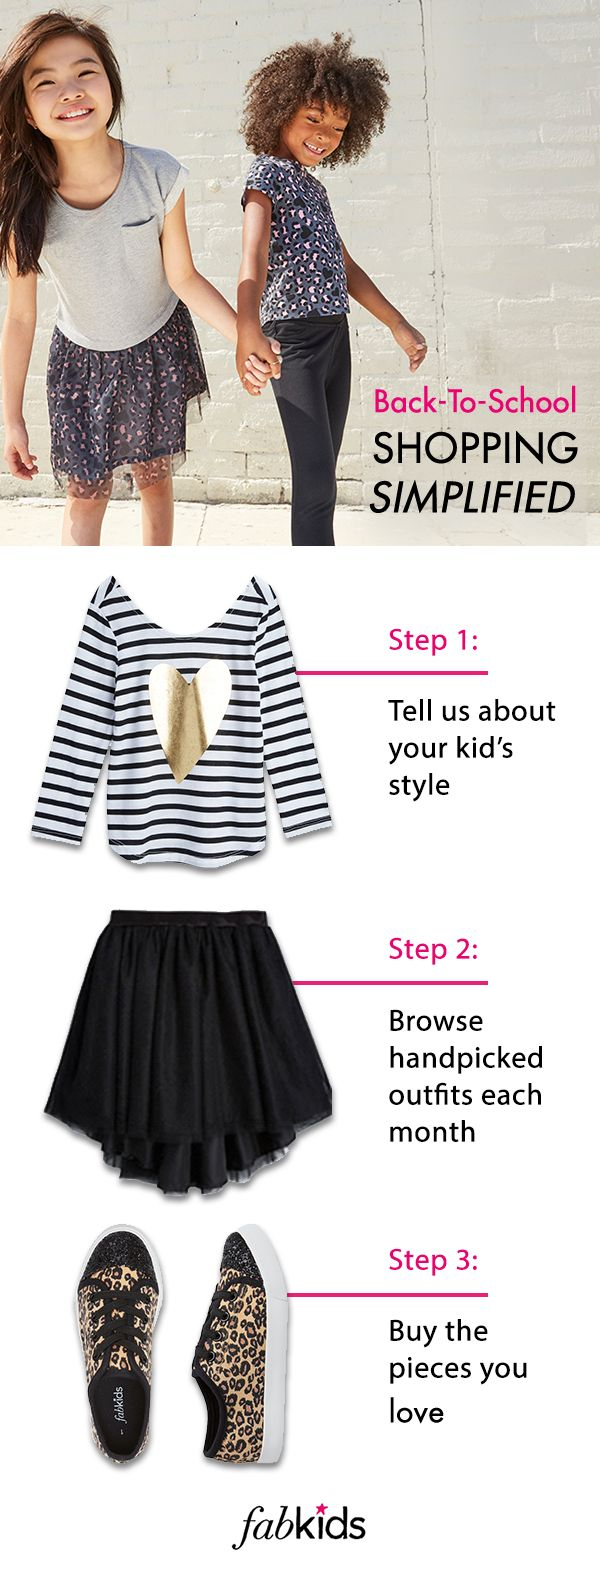 Back-to-school does not have to mean back-to-mall. At FabKids, we're making it…